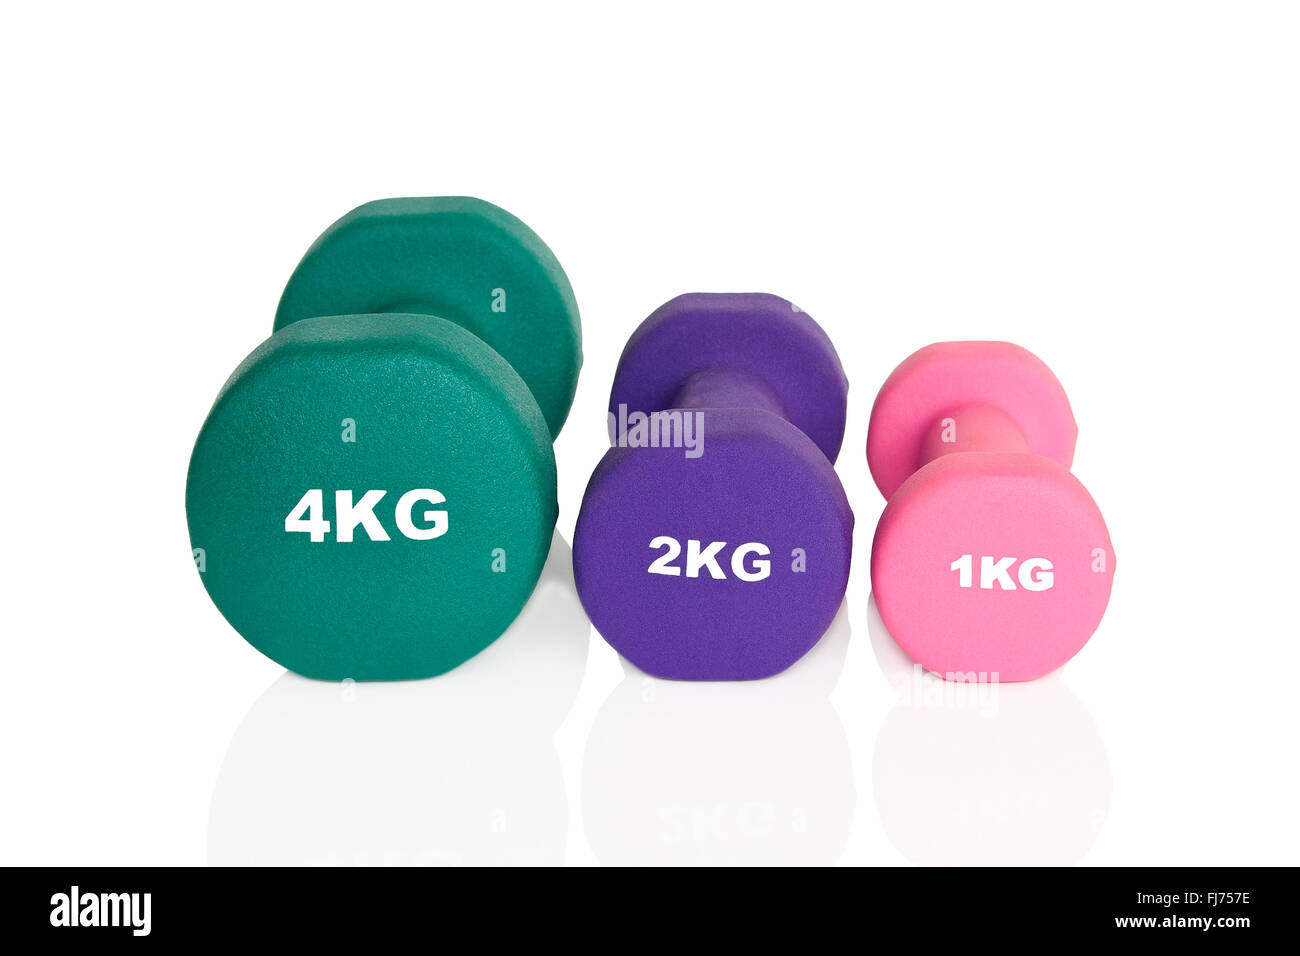 Pink, green and purple dumbbells isolated on white background. Weights for a fitness training. - Stock Image